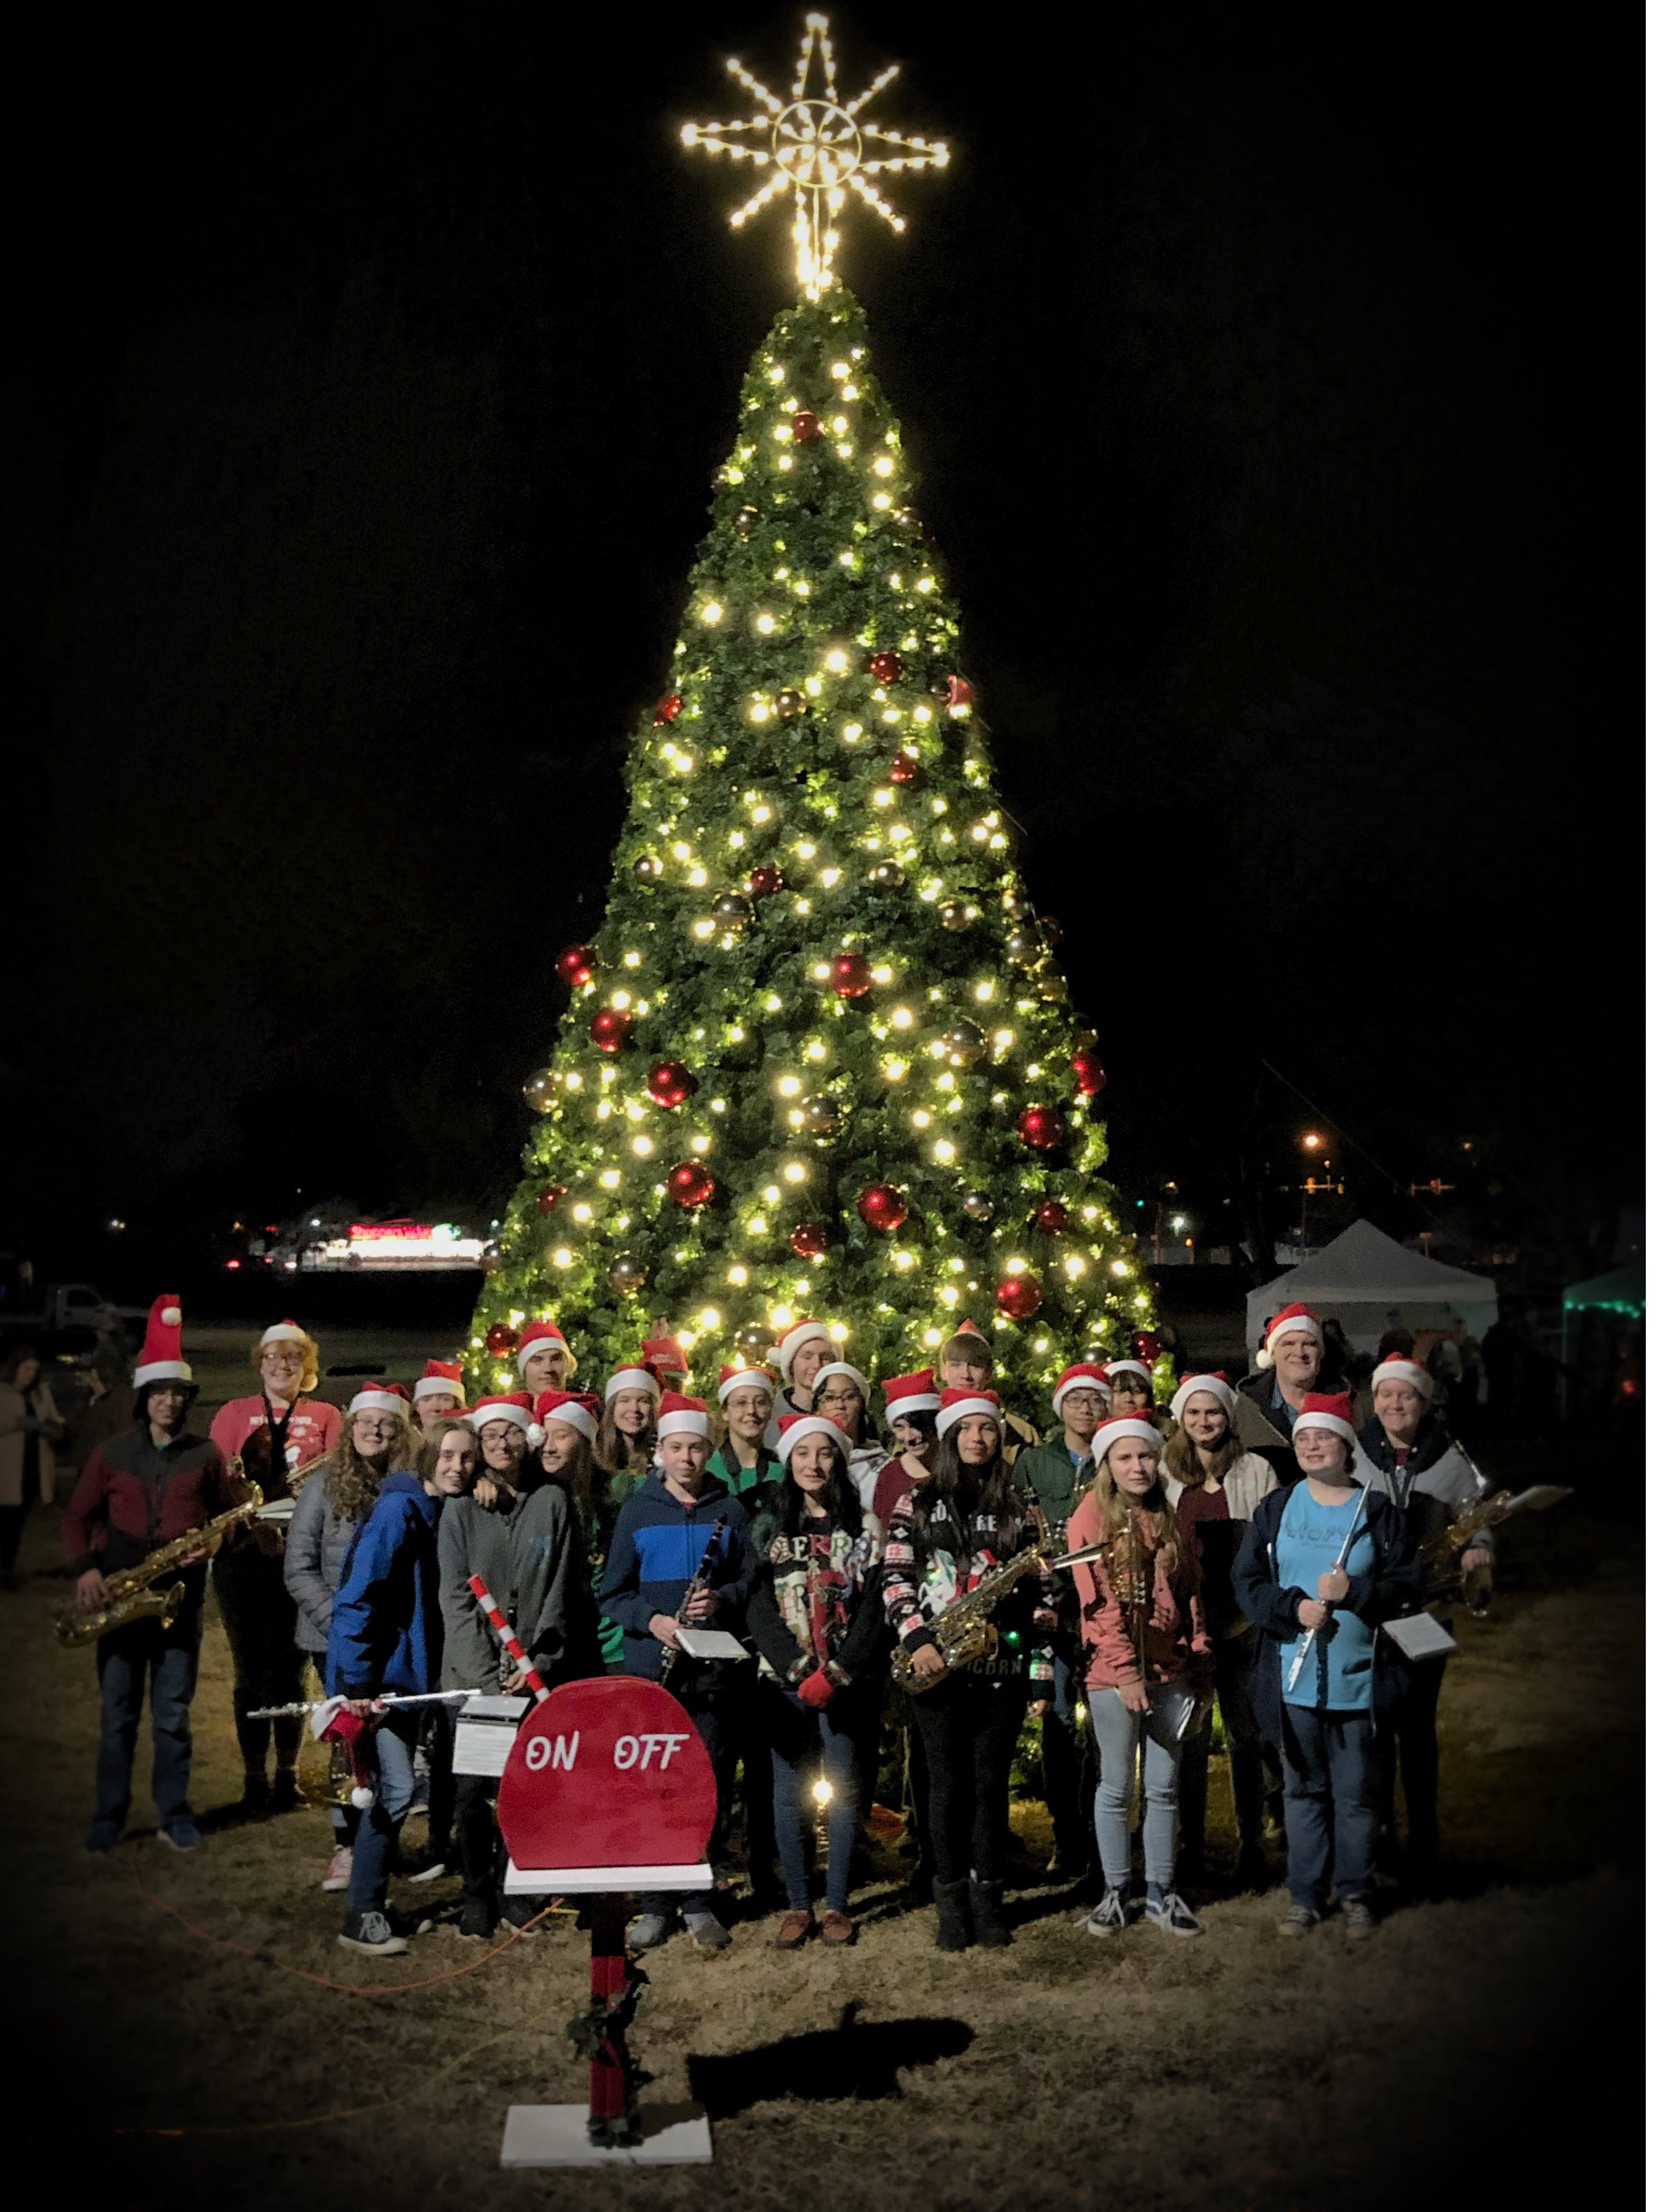 Christmas In New Harmony 2021 Get Your Free Commercial Holiday Decor Catalog For Cities Light Shows In 2021 Commercial Holiday Decor Christmas Decorations Christmas Tree